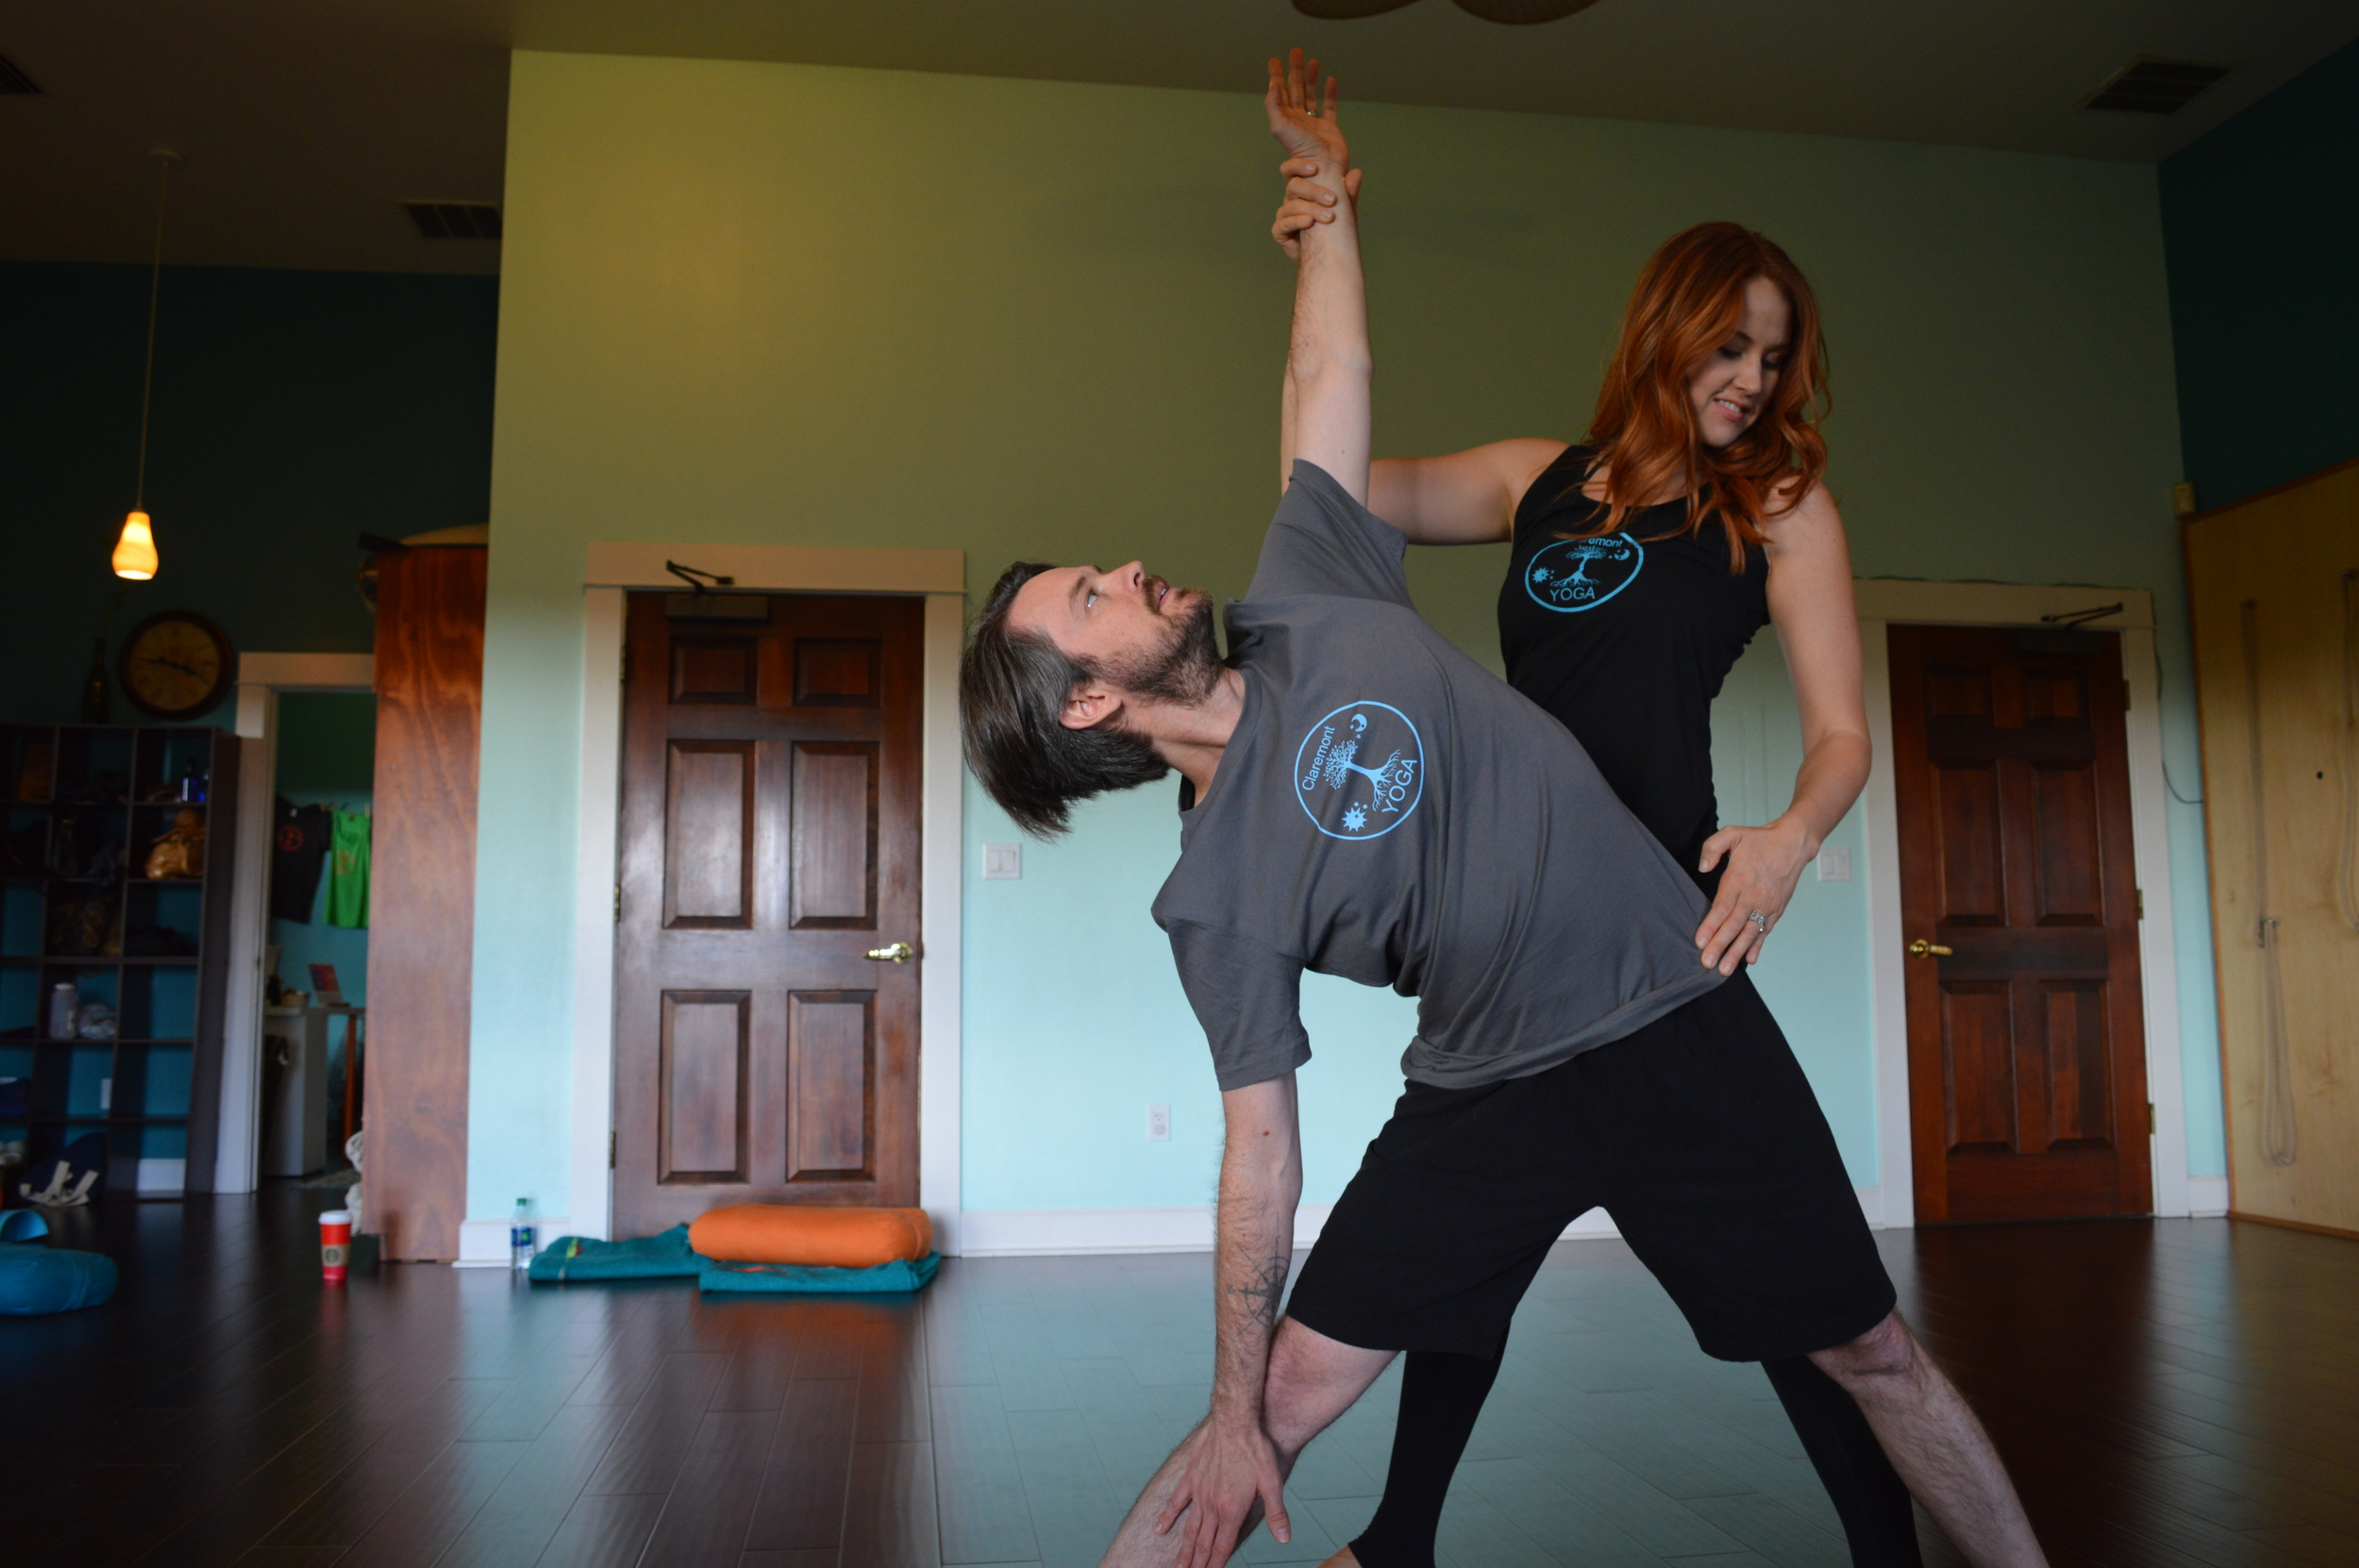 claremont-yoga-stephen-emily-adjustment.jpg